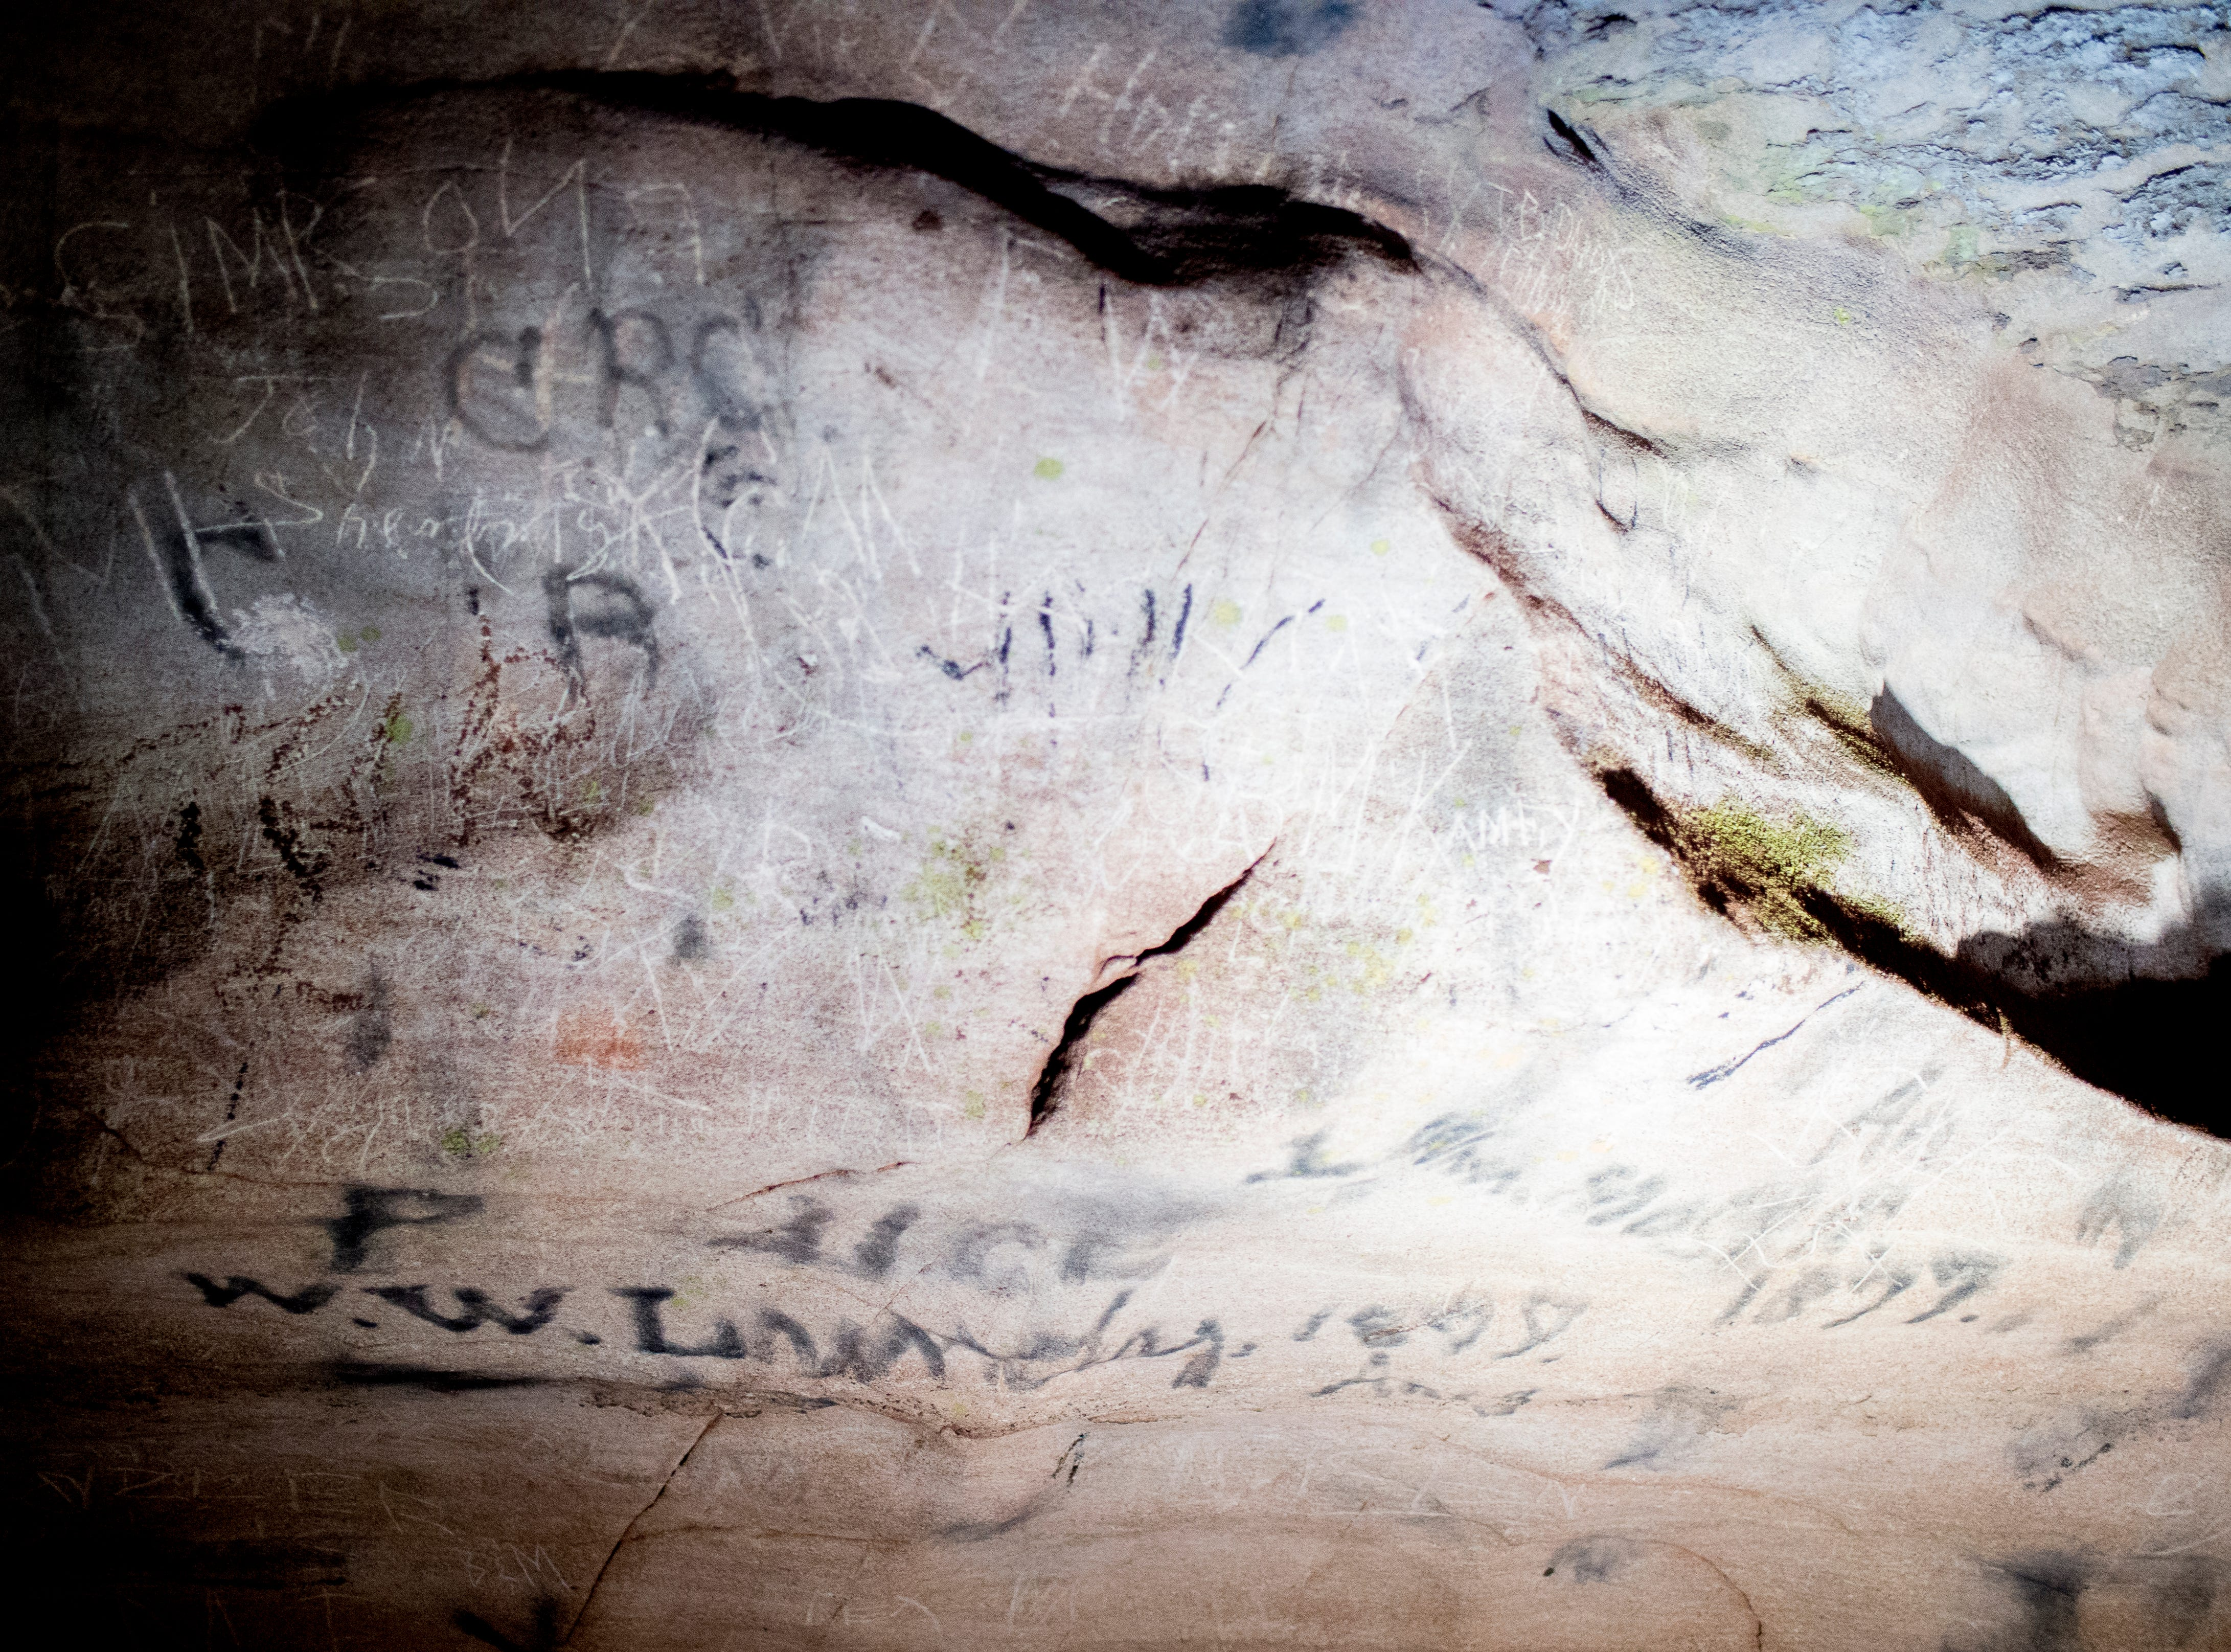 Graffiti, including Confederate Army graffiti seen in black, is etched into the cave walls at the Lost Sea Adventure underground cave attraction outside of Sweetwater, Tennessee on Wednesday, August 15, 2018. The cave system dates back some 20,000 years and today features points of interests like an old moonshine still, rock formations, Confederate Army graffiti and the popular boat ride in a natural lake stocked with 200 rainbow trout.